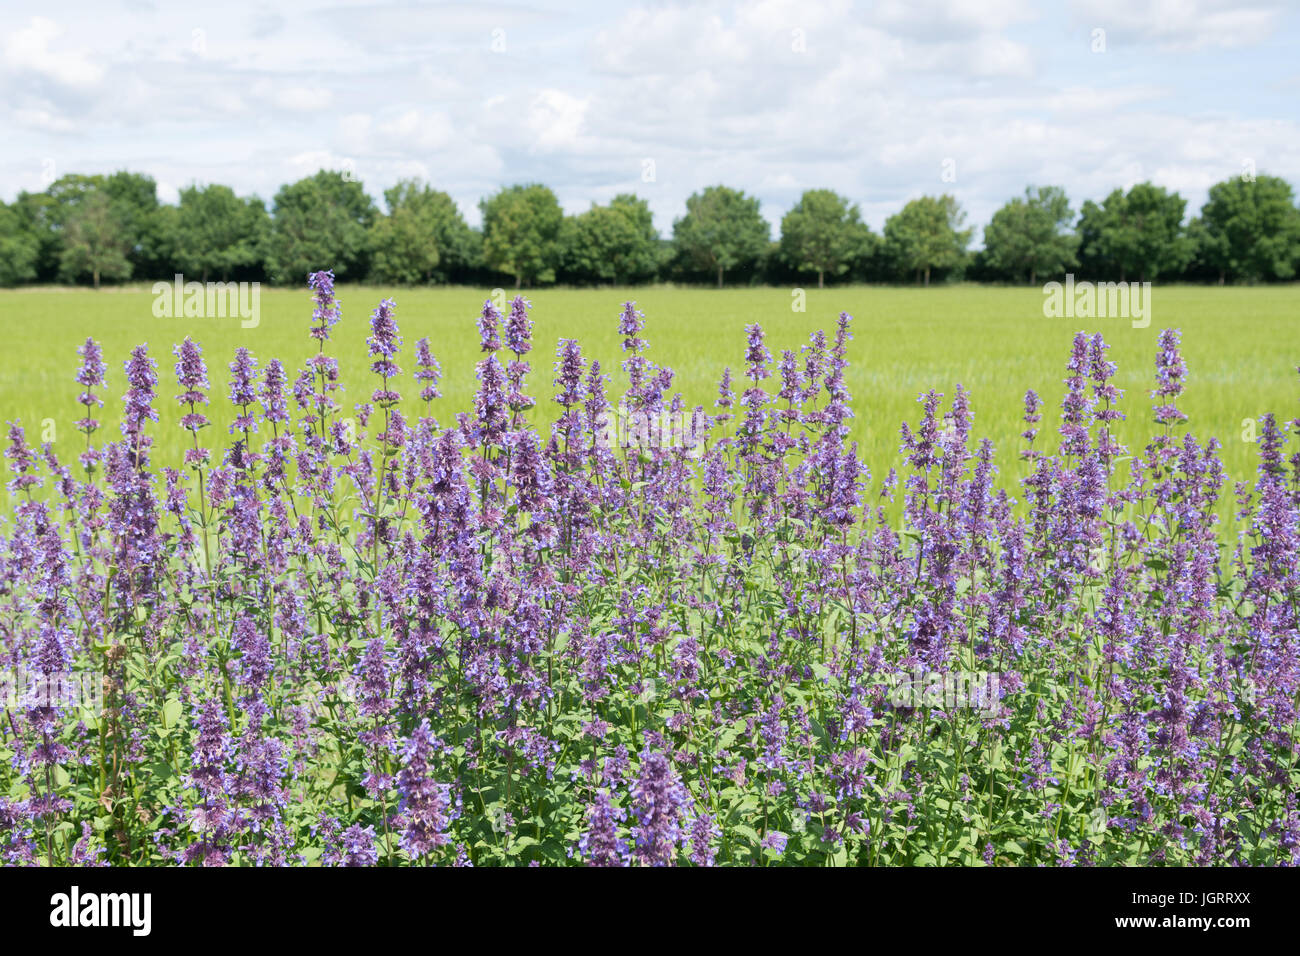 Nepeta transcaucasica blue infinity catmit at Breezy Knees Gardens, York, England, UK - Stock Image